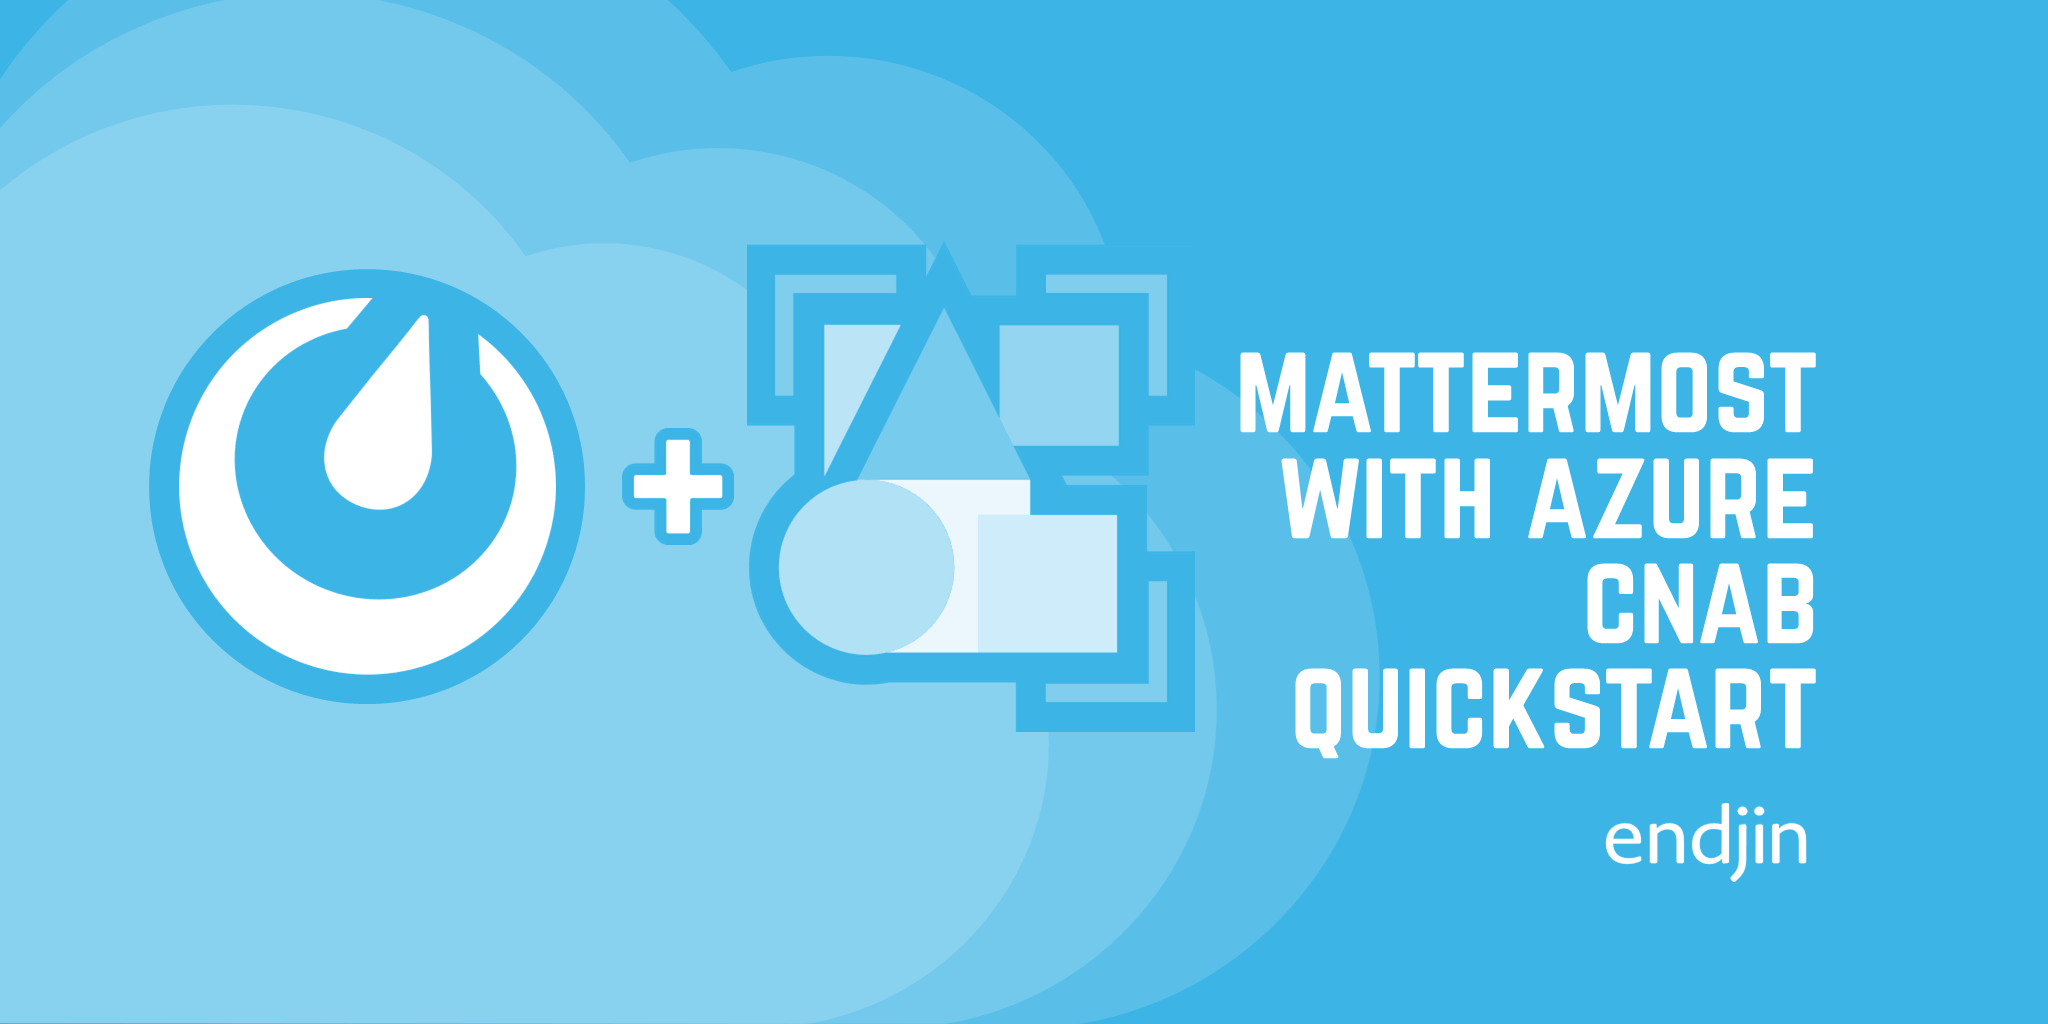 Installing Mattermost using the Azure CNAB Quickstart Library